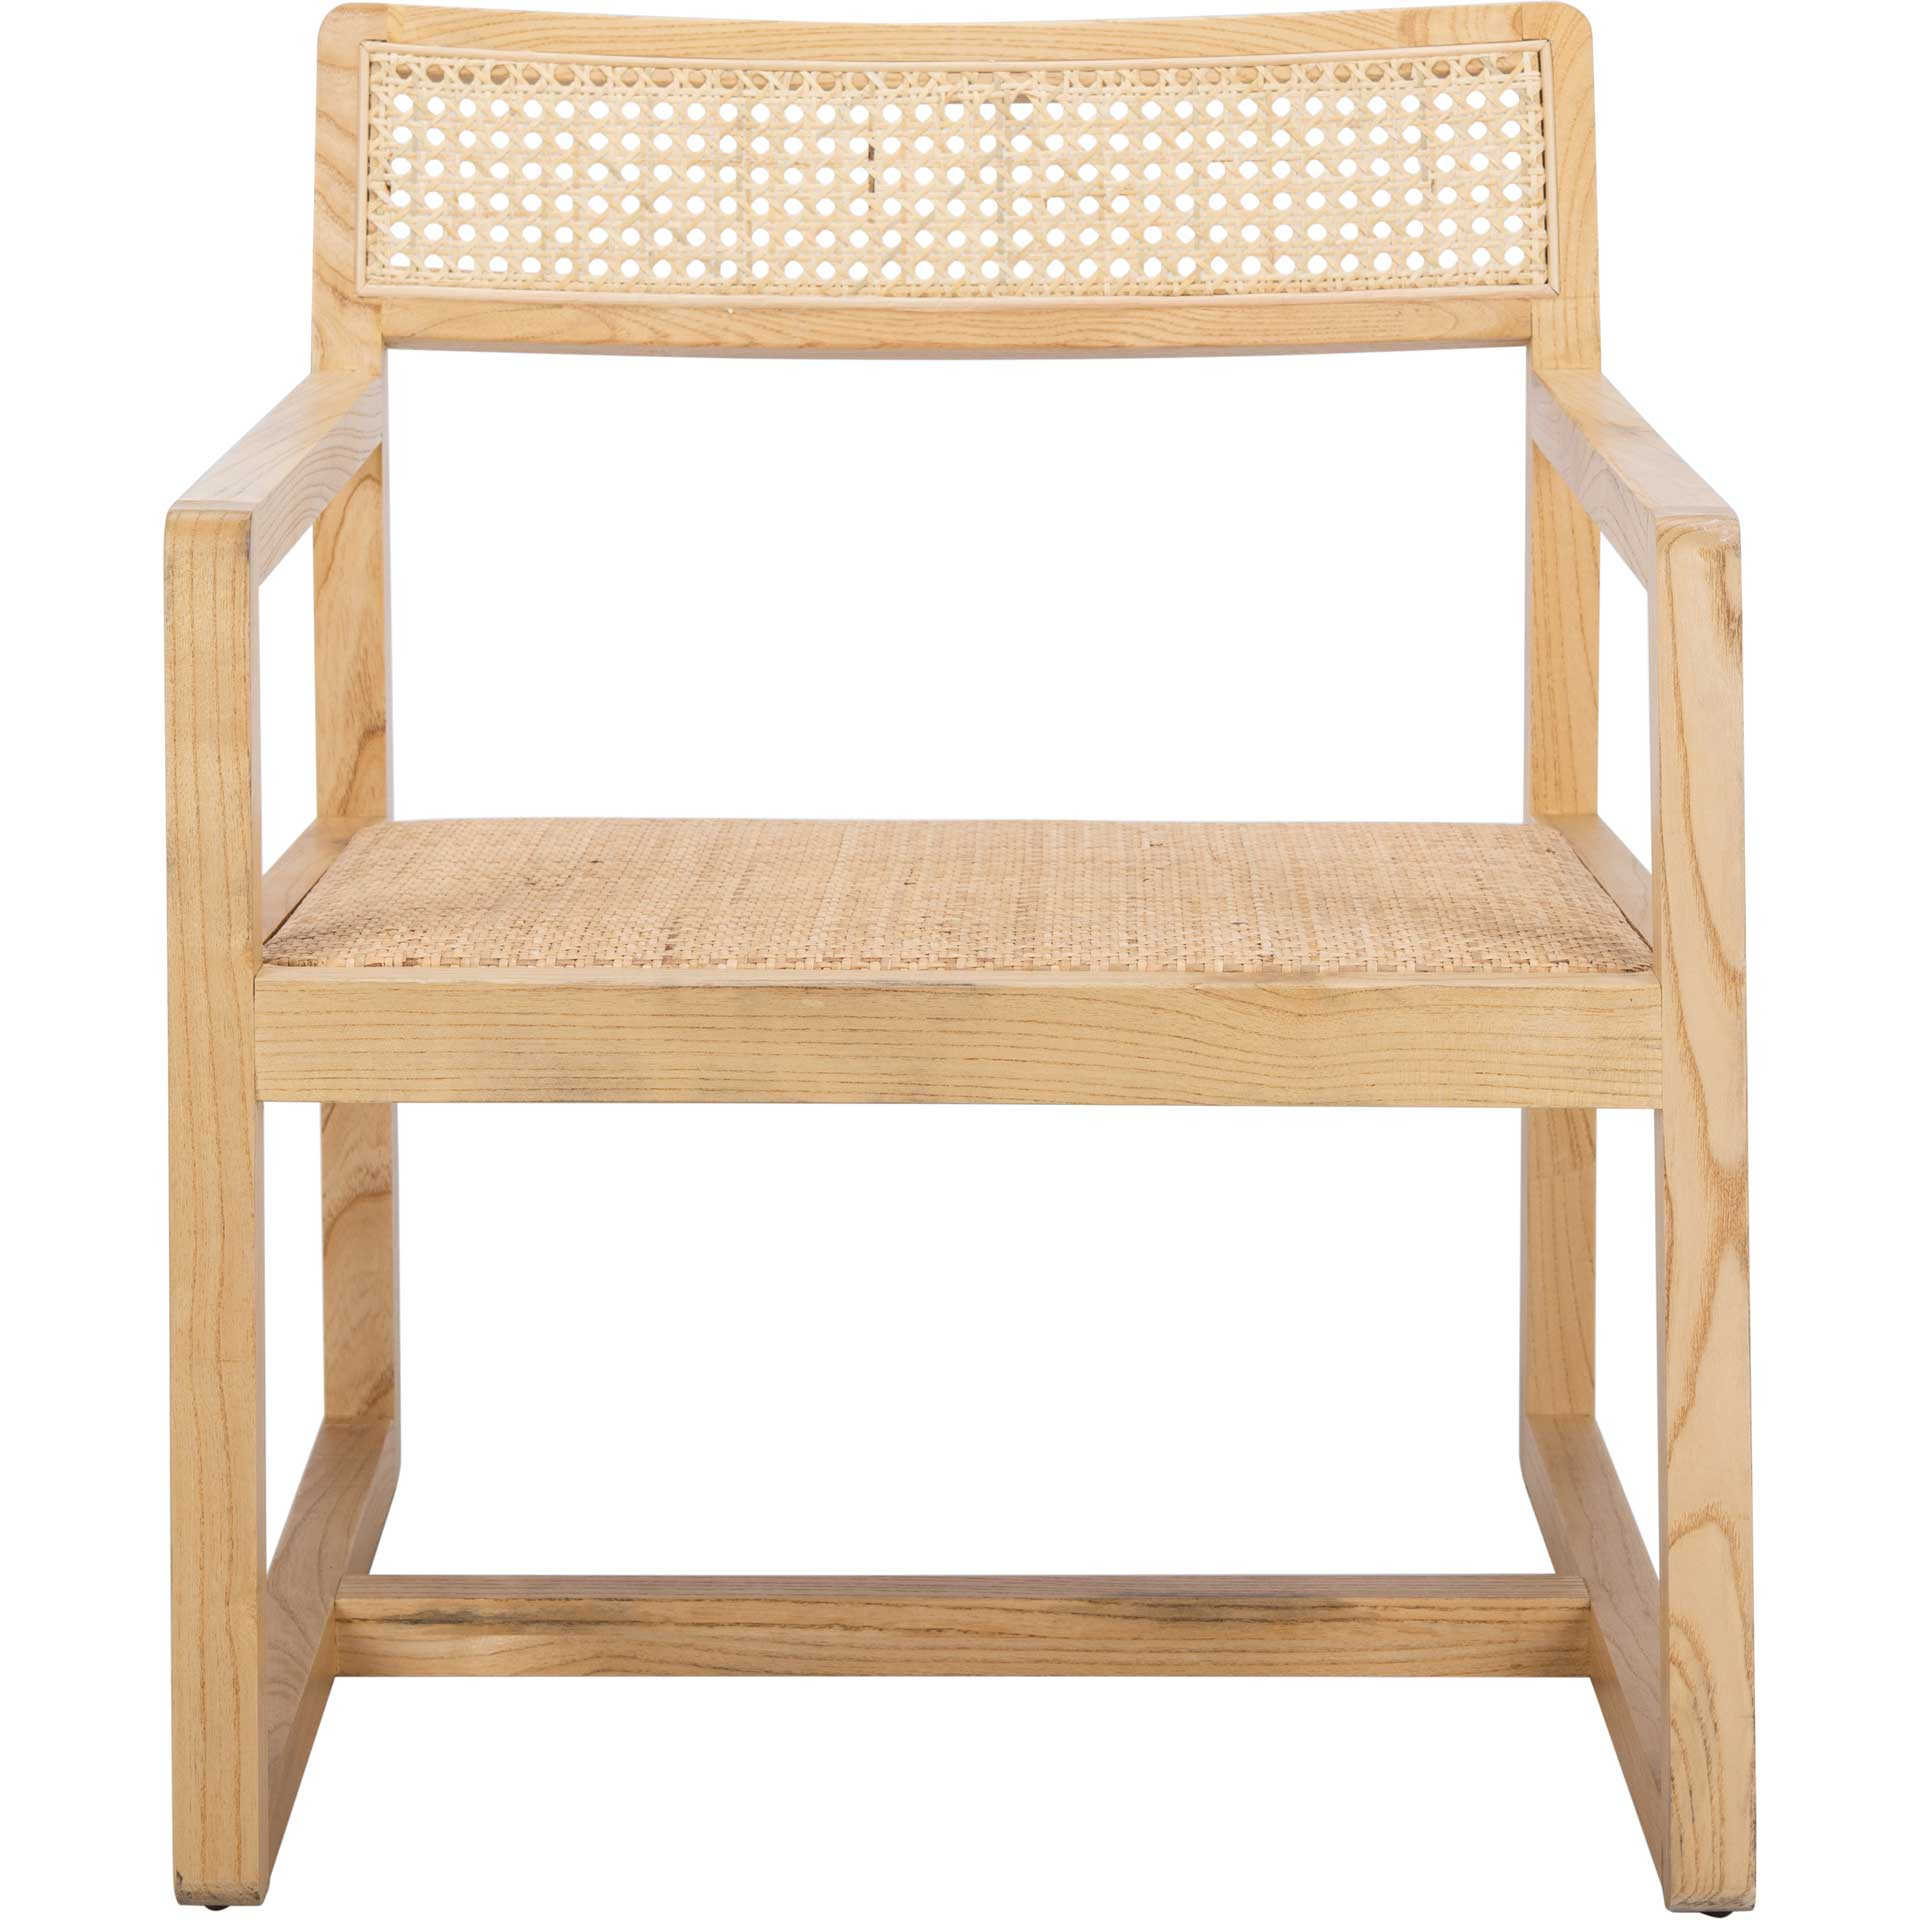 Lucy Cane Accent Chair Natural